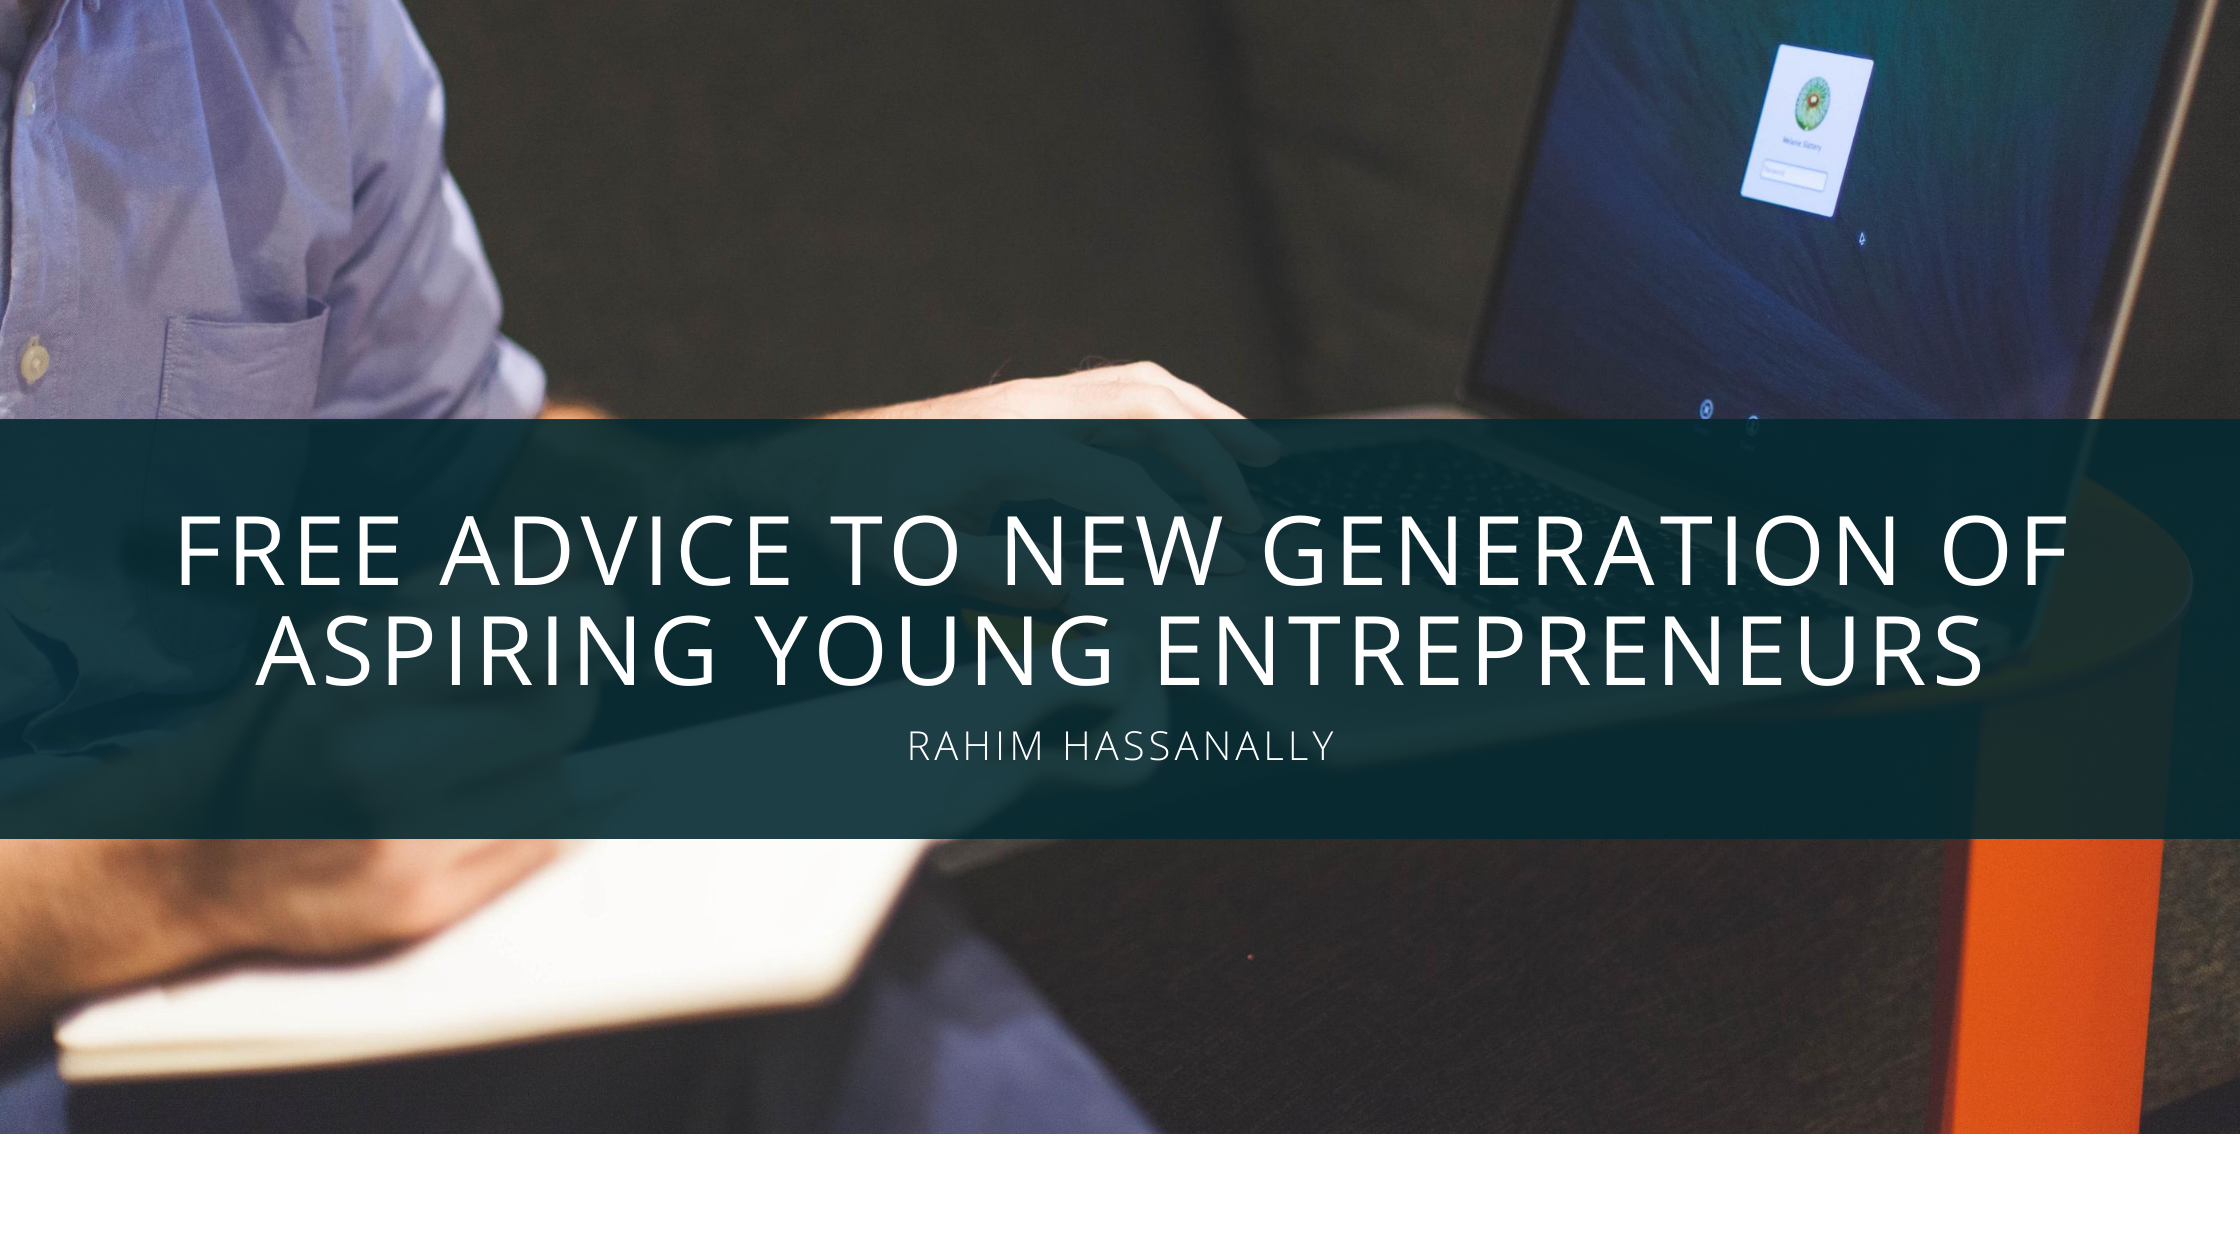 Rahim Hassanally to offer free advice to new generation of aspiring young entrepreneurs